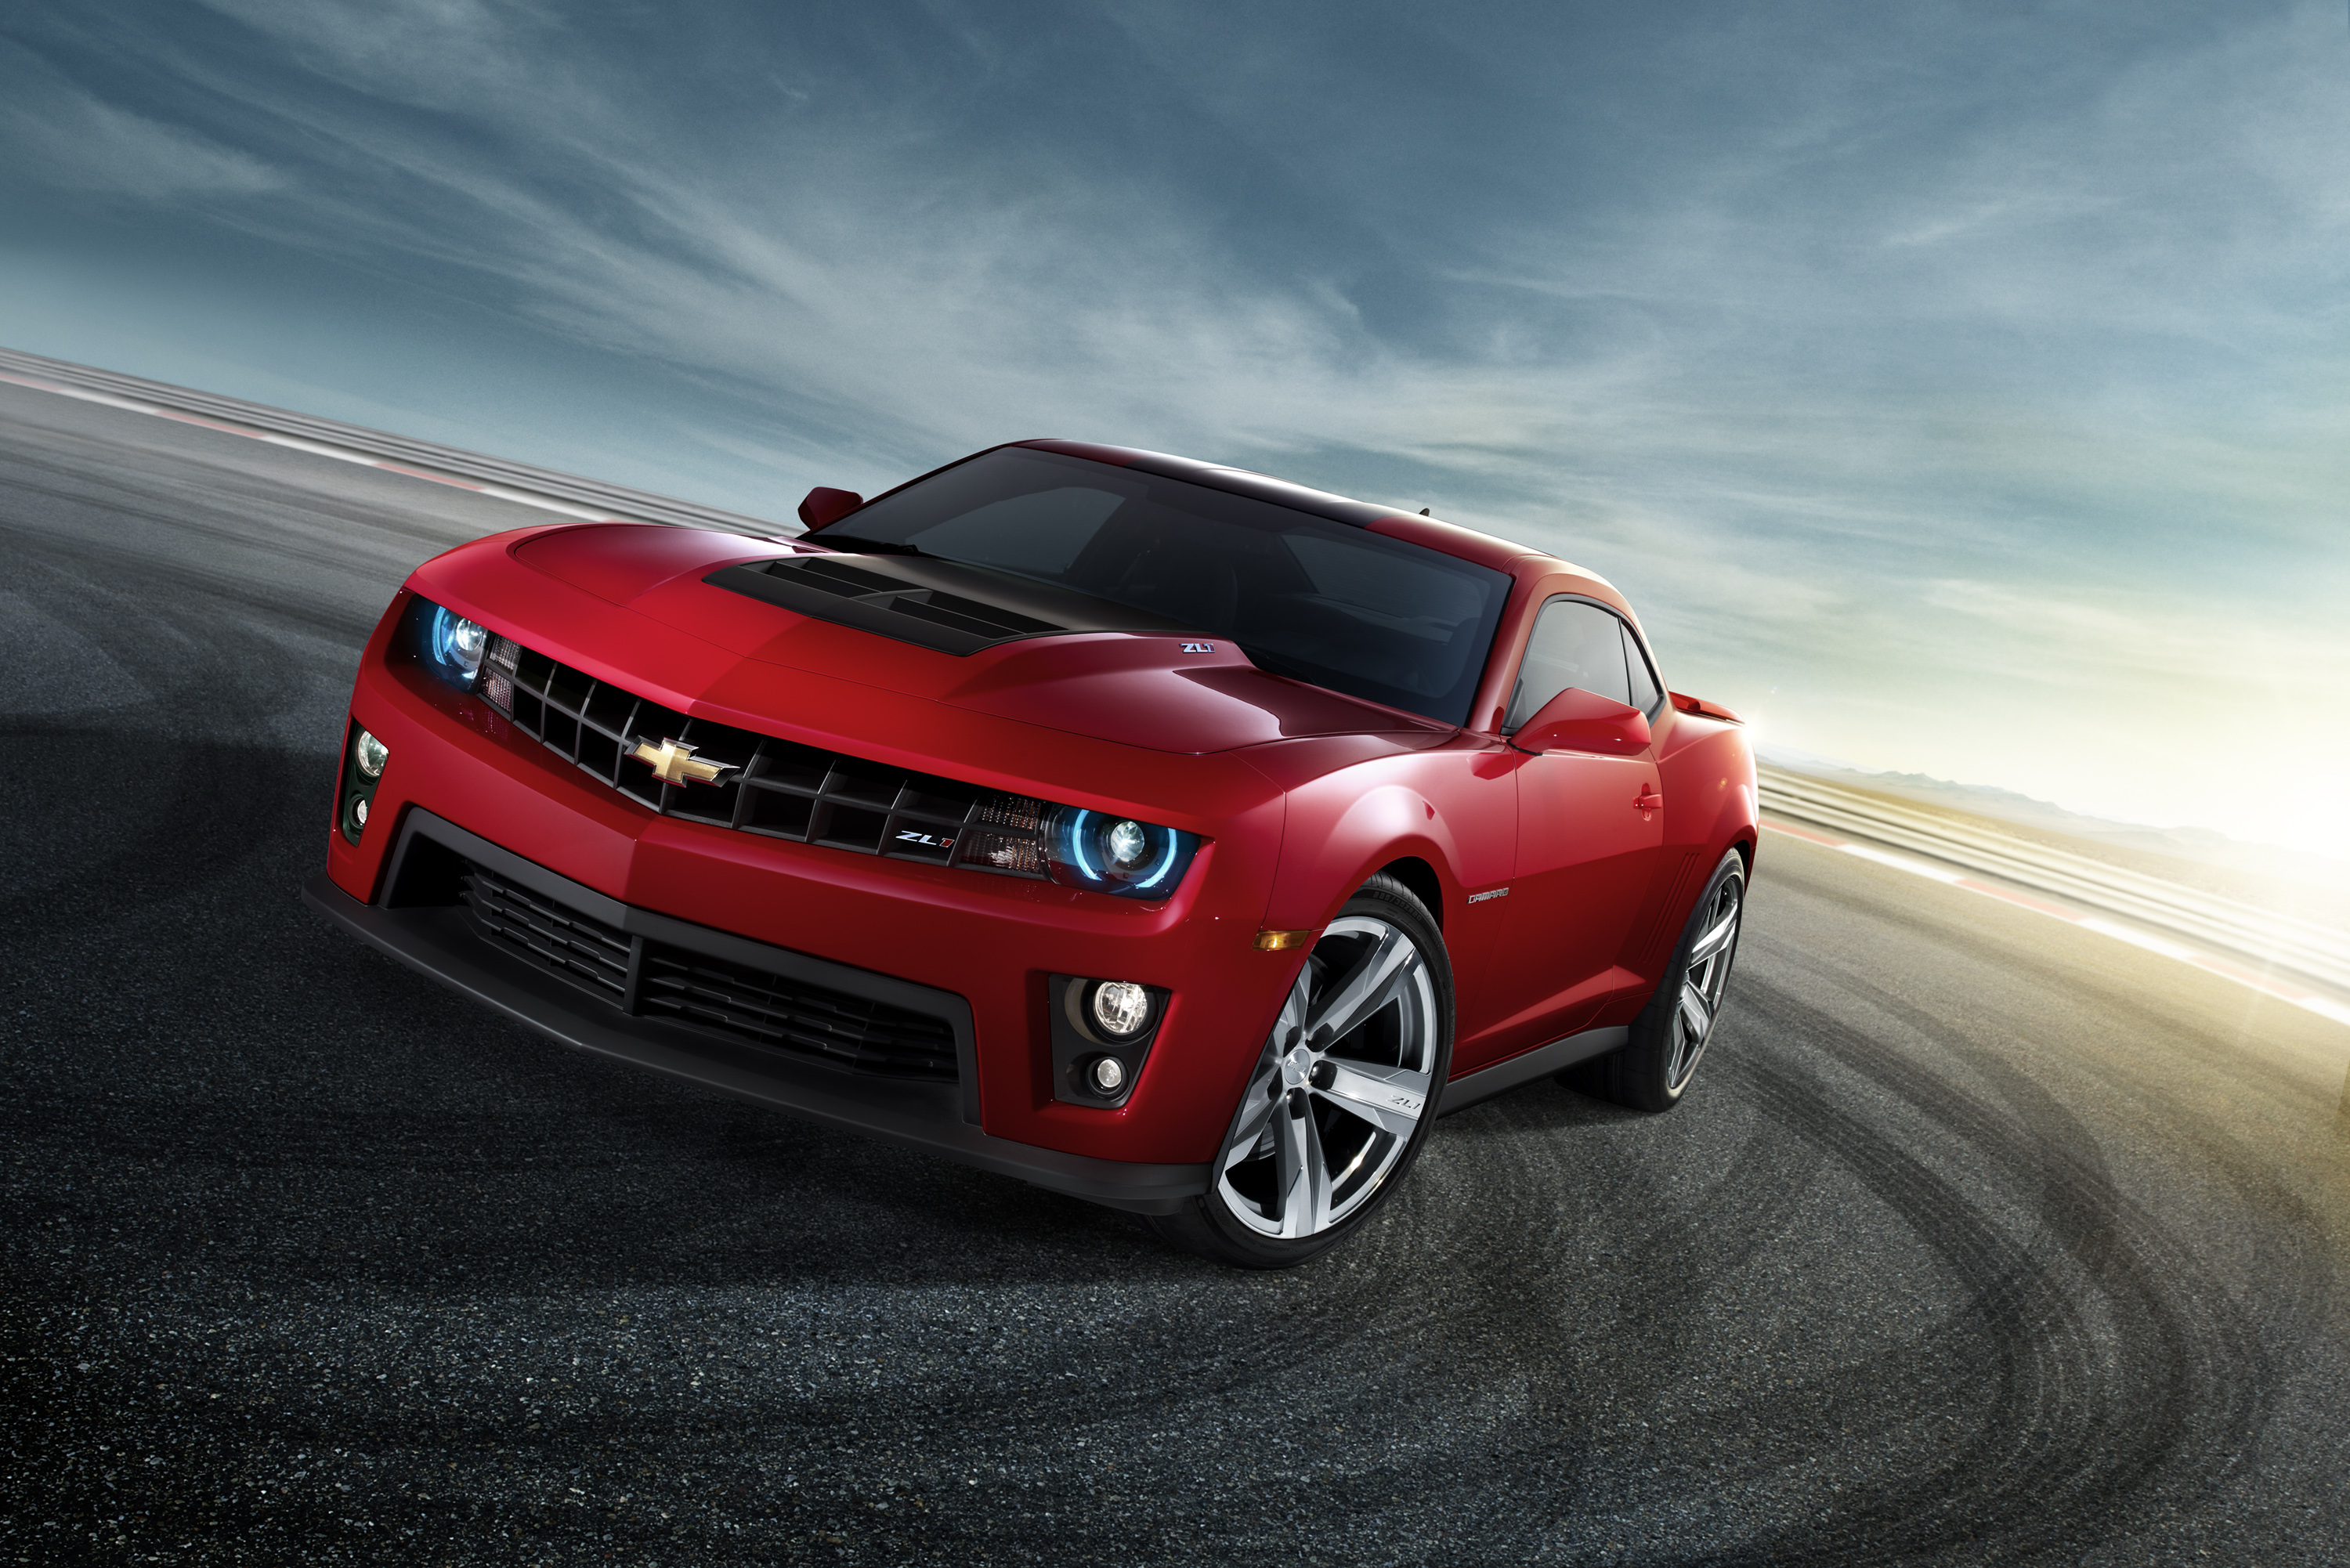 2012 Camaro ZL1 Wallpapers High Resolution   Camaro5 3000x2002